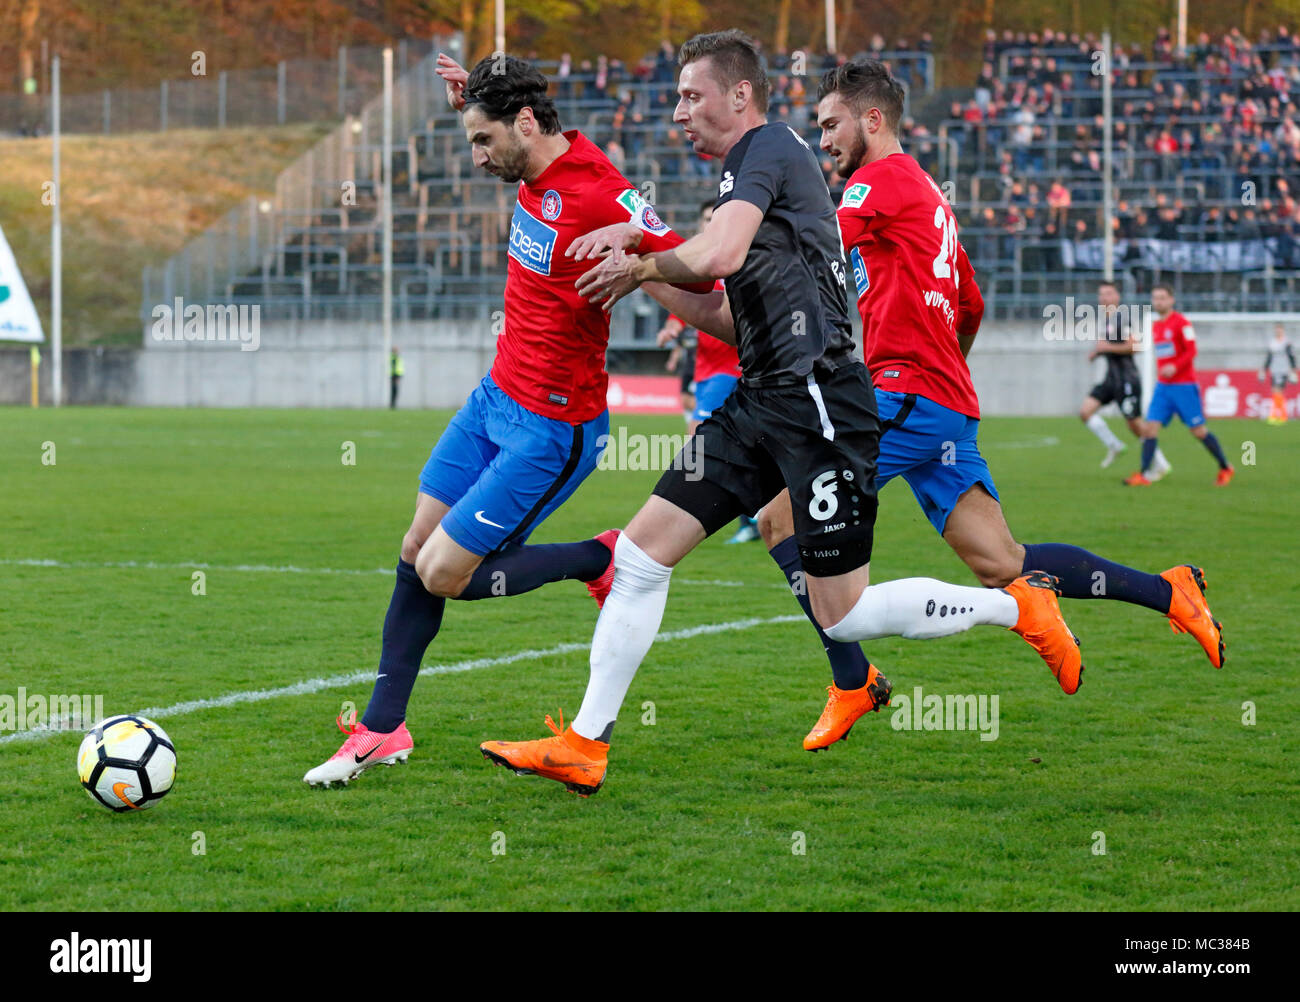 sports, football, Regional League West, 2017/2018, Wuppertaler SV vs Rot Weiss Essen 3:1, scene of the match, f.l.t.r. Silvio Pagano (WSV), Kamil Bednarski (RWE), Enes Topal (WSV) - Stock Image